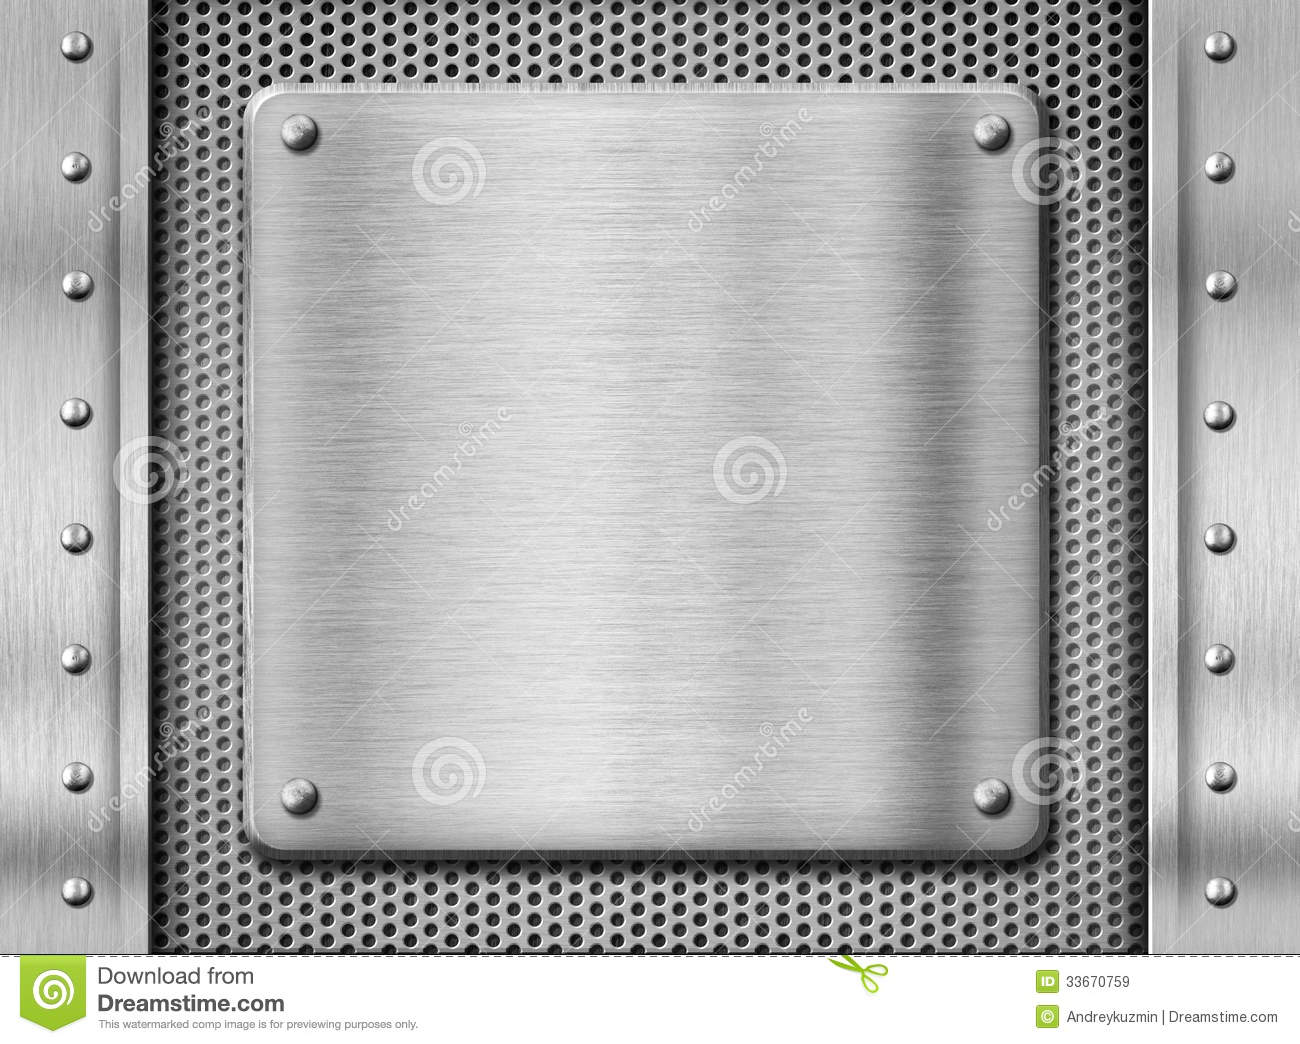 metal stainless steel plate background stock image